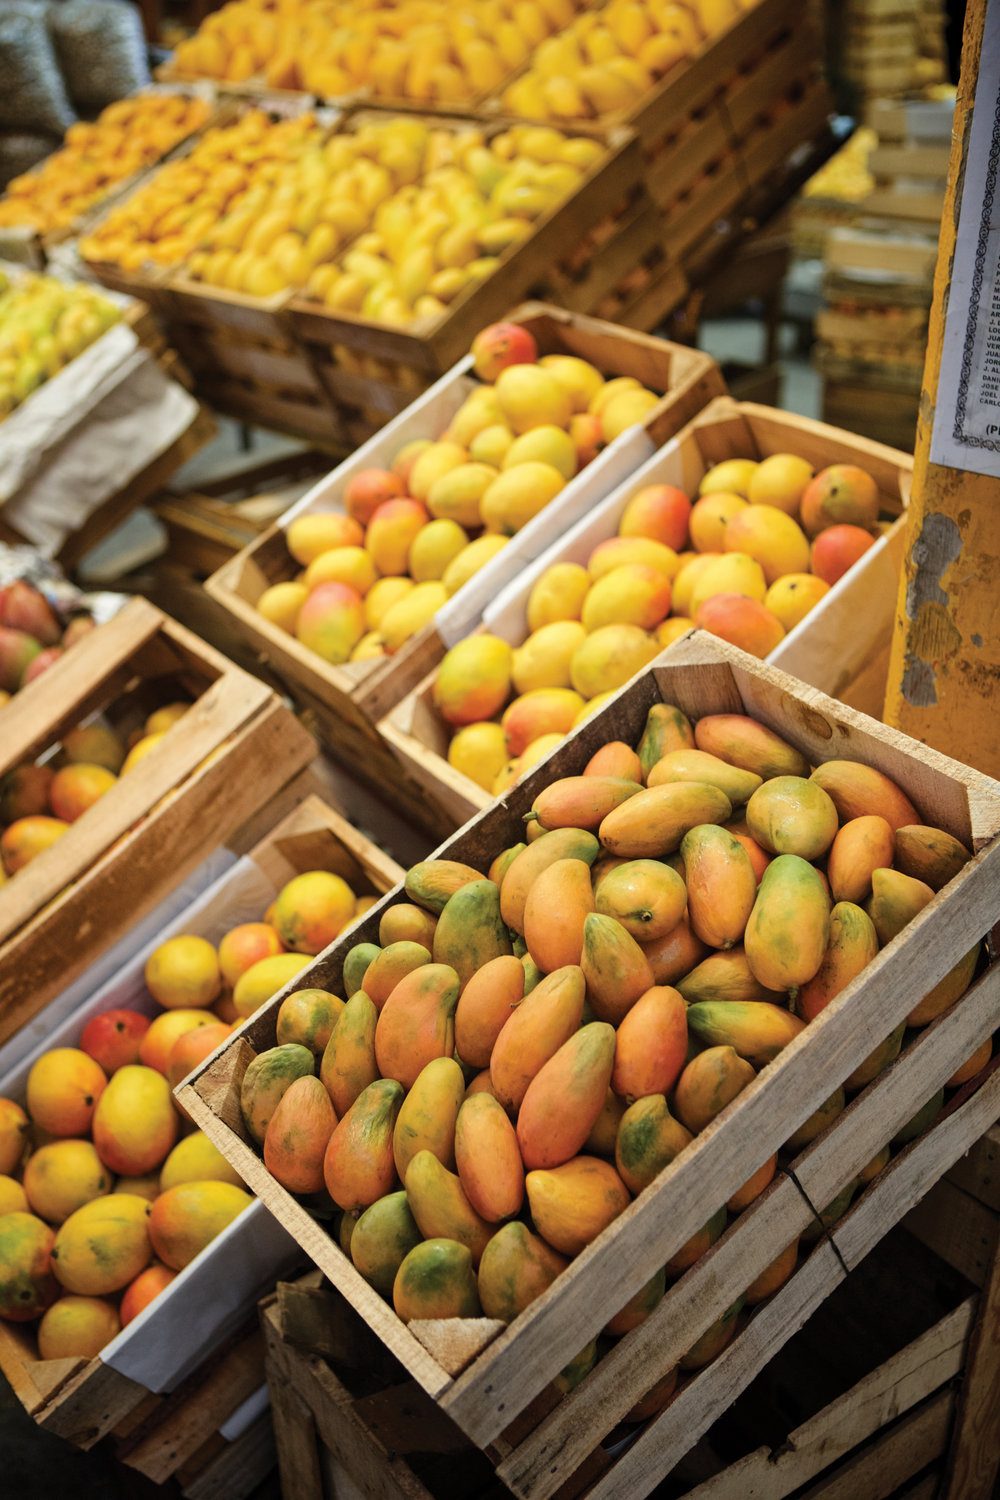 Copy of several crates full of mangos